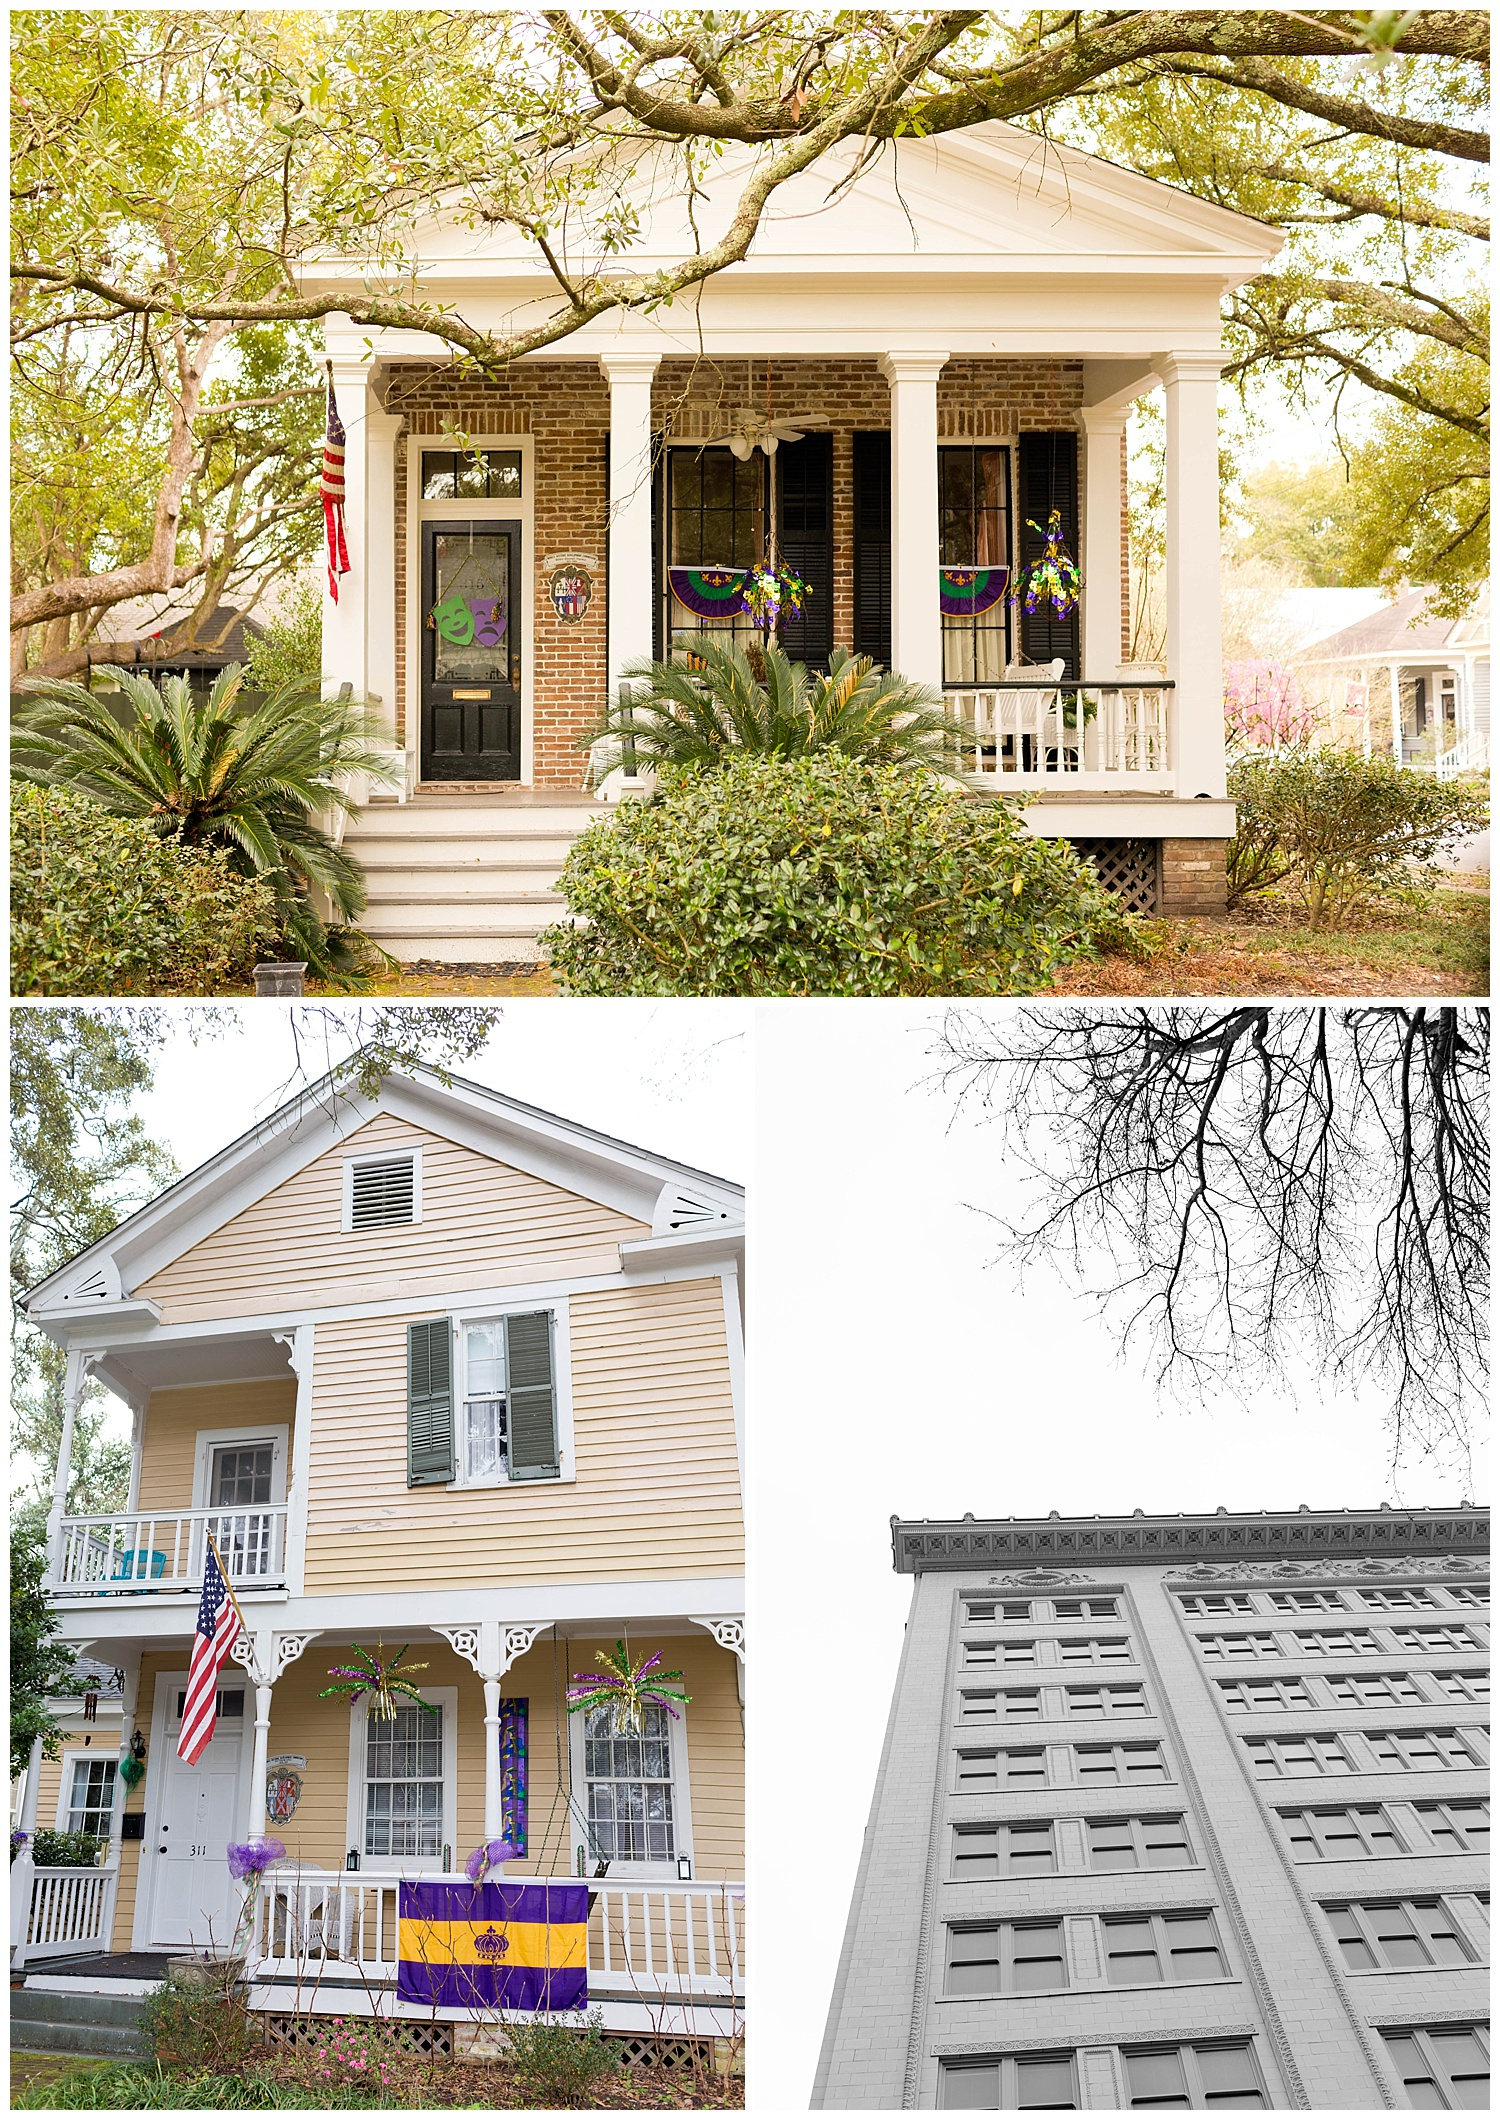 houses and buildings in Mobile, Alabama